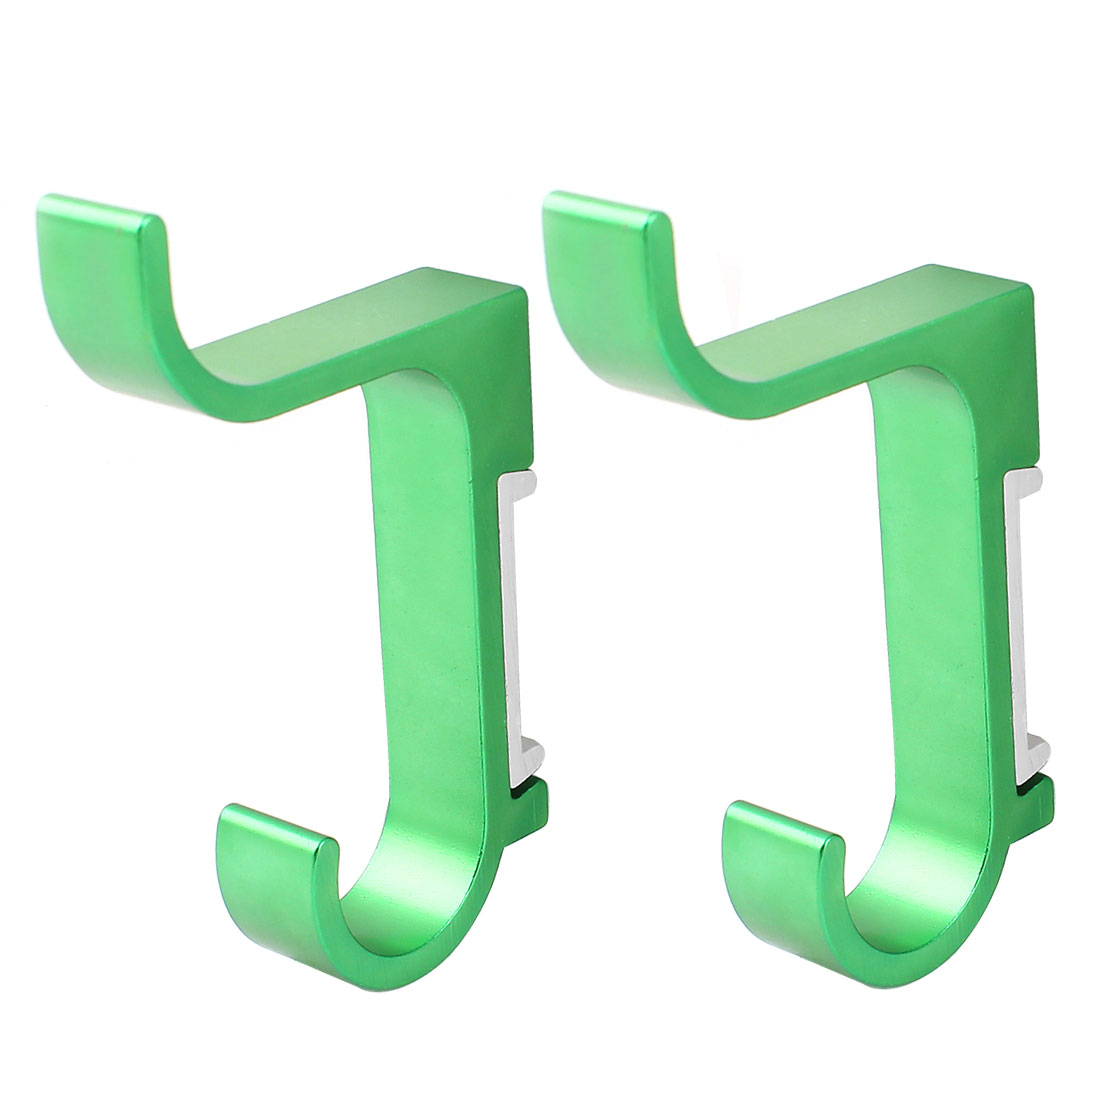 2 Pieces Aluminum Wall Mount Bathroom Towel Holders Robe Hooks Hanger Green 85mm